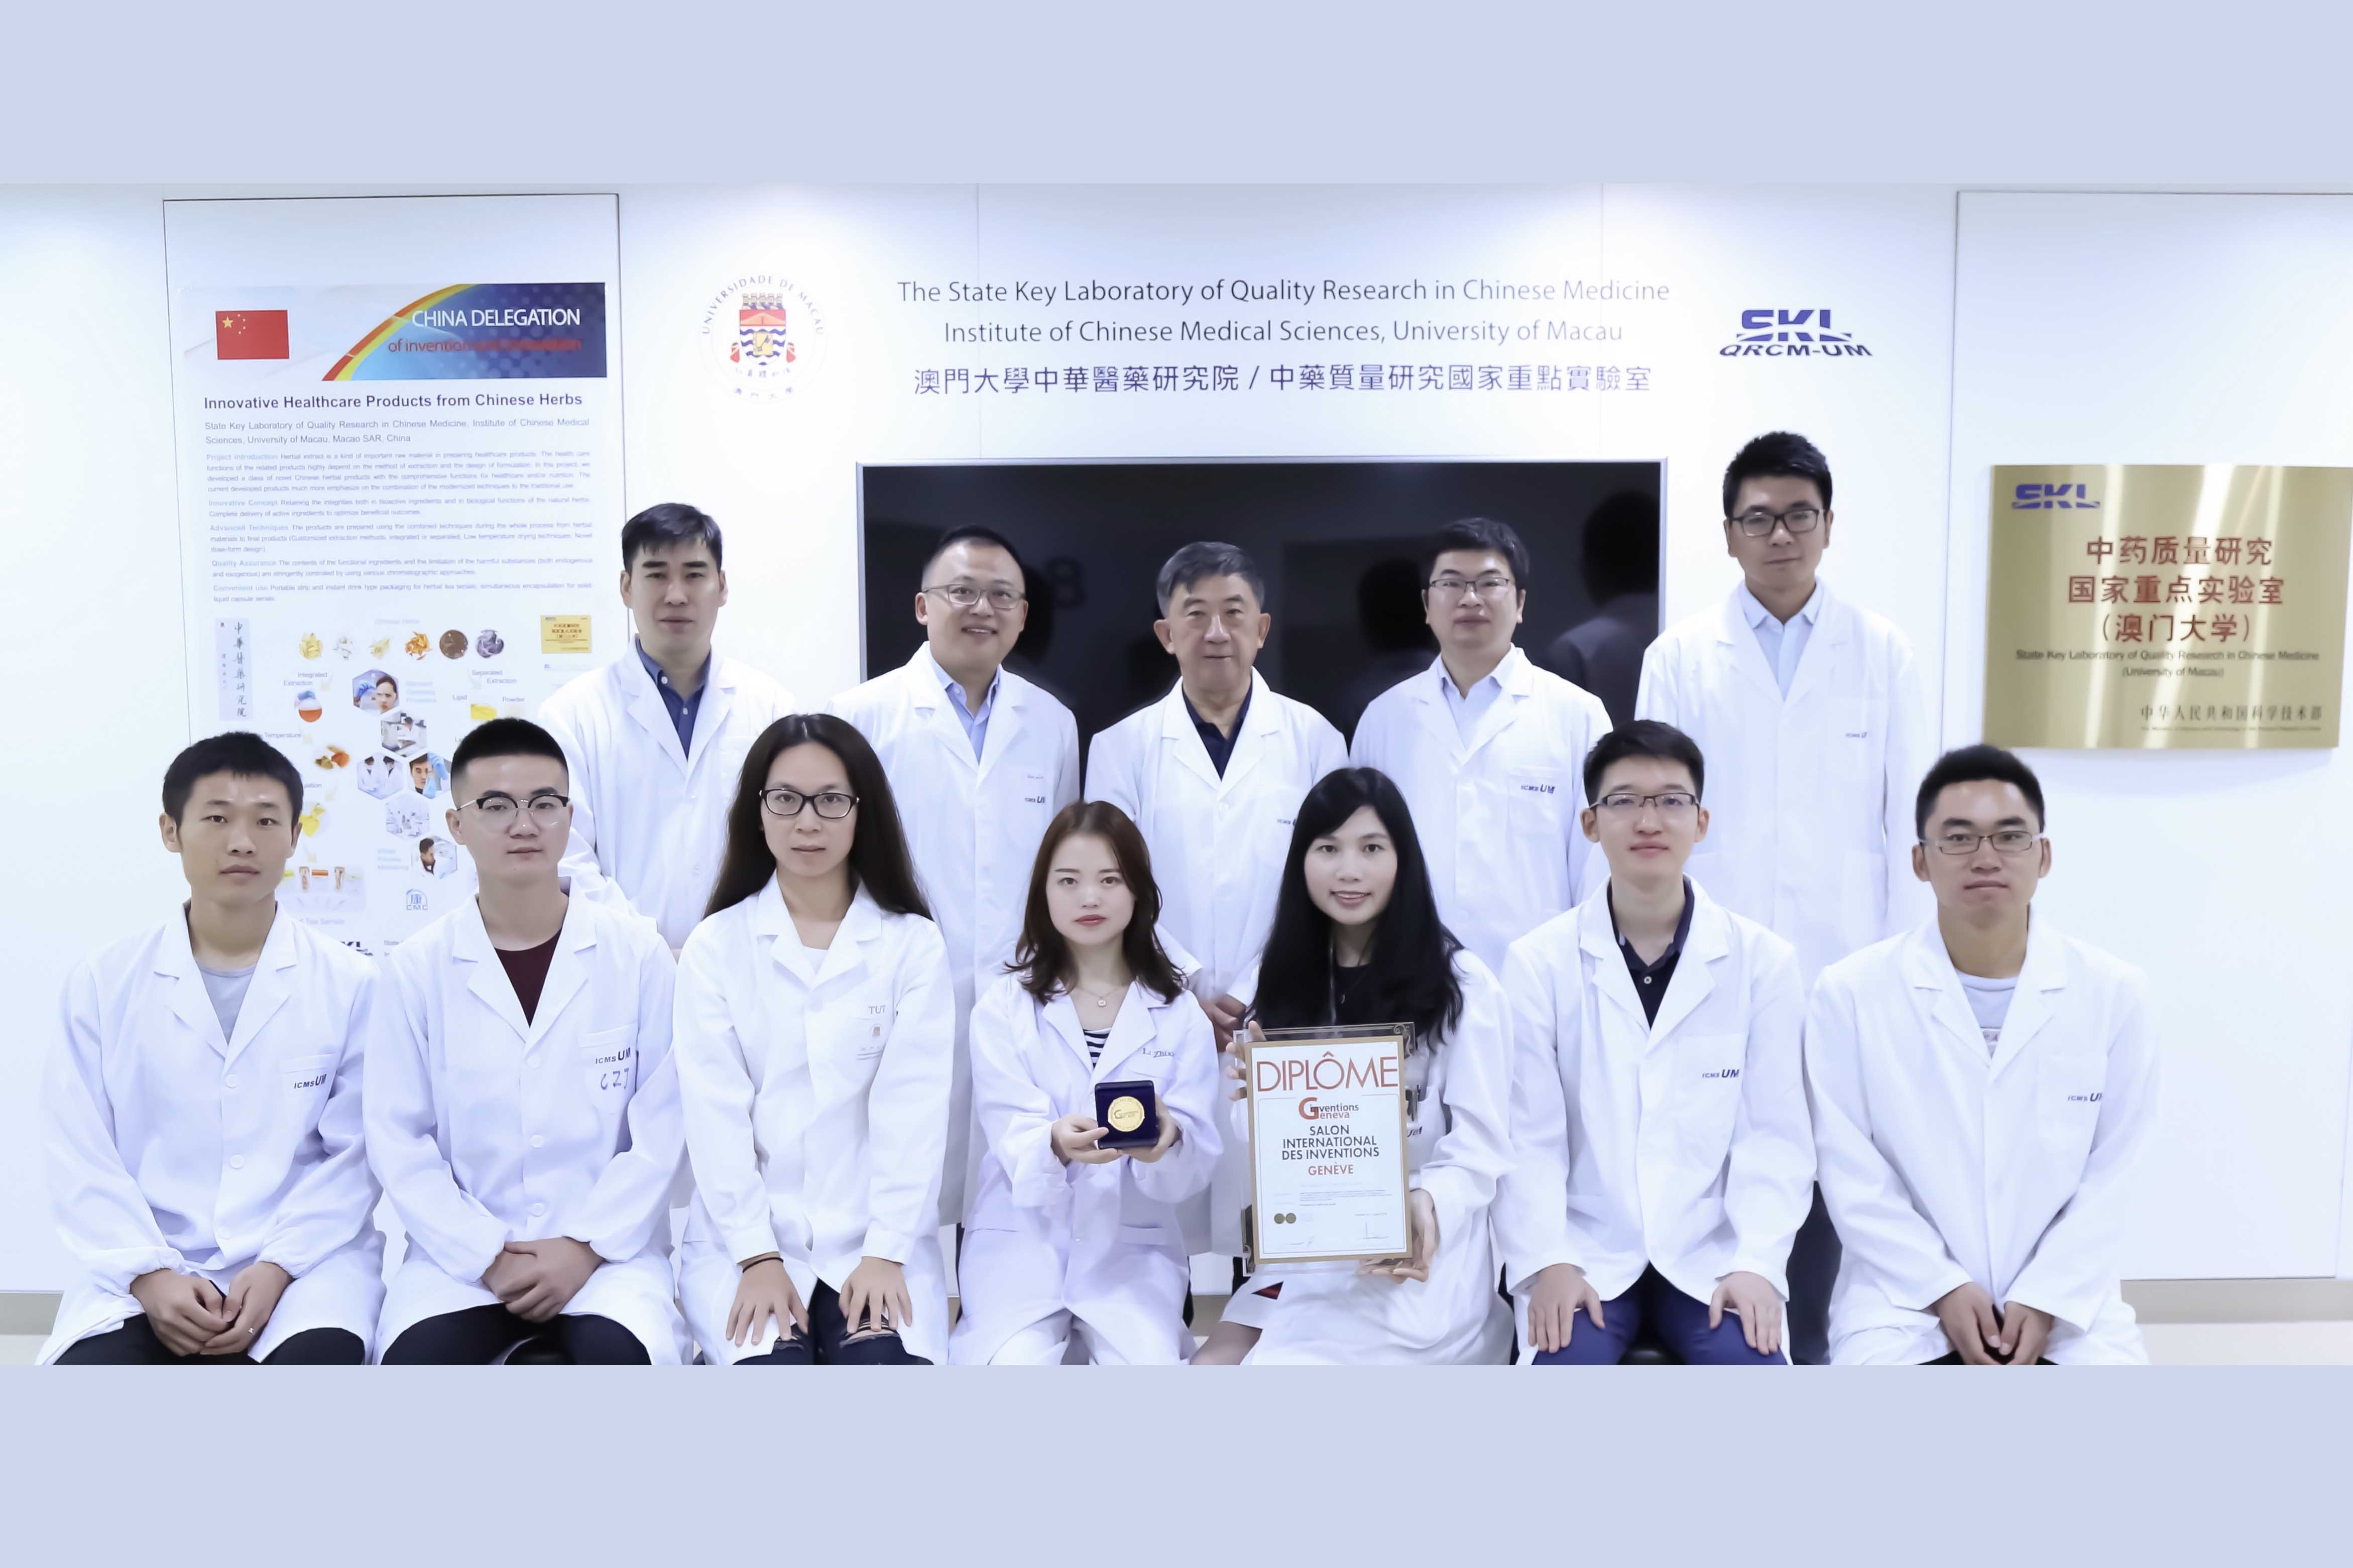 The research team for the innovative Chinese herbal products